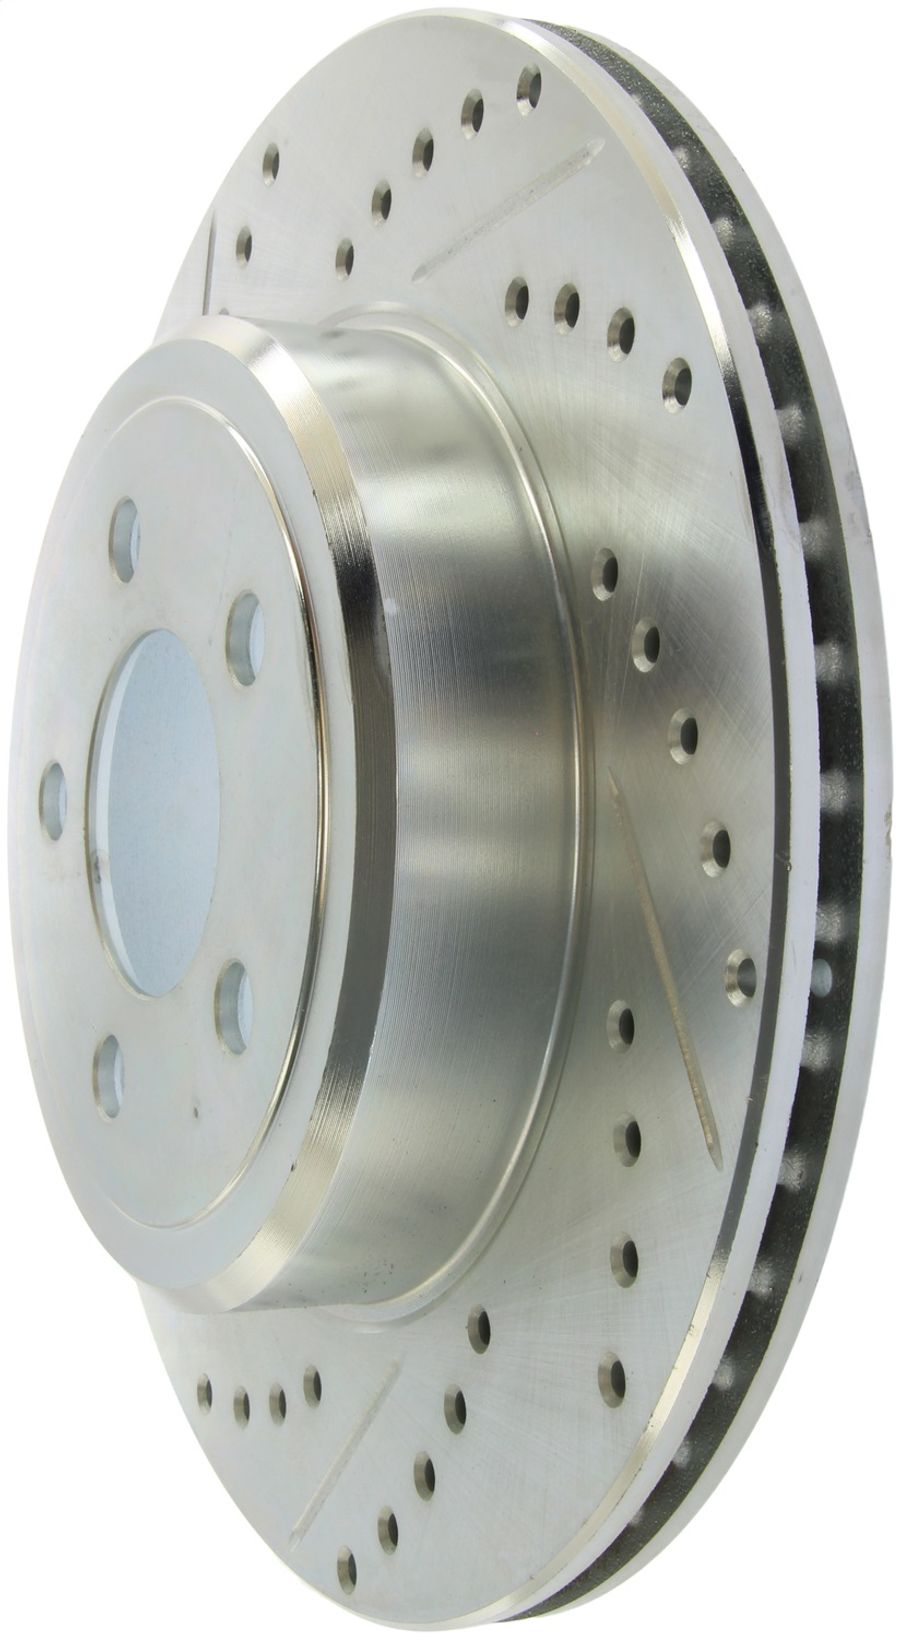 StopTech Disc Brake Rotors Brakes Select Sport Drilled/Slotted Rotor 227.63062R